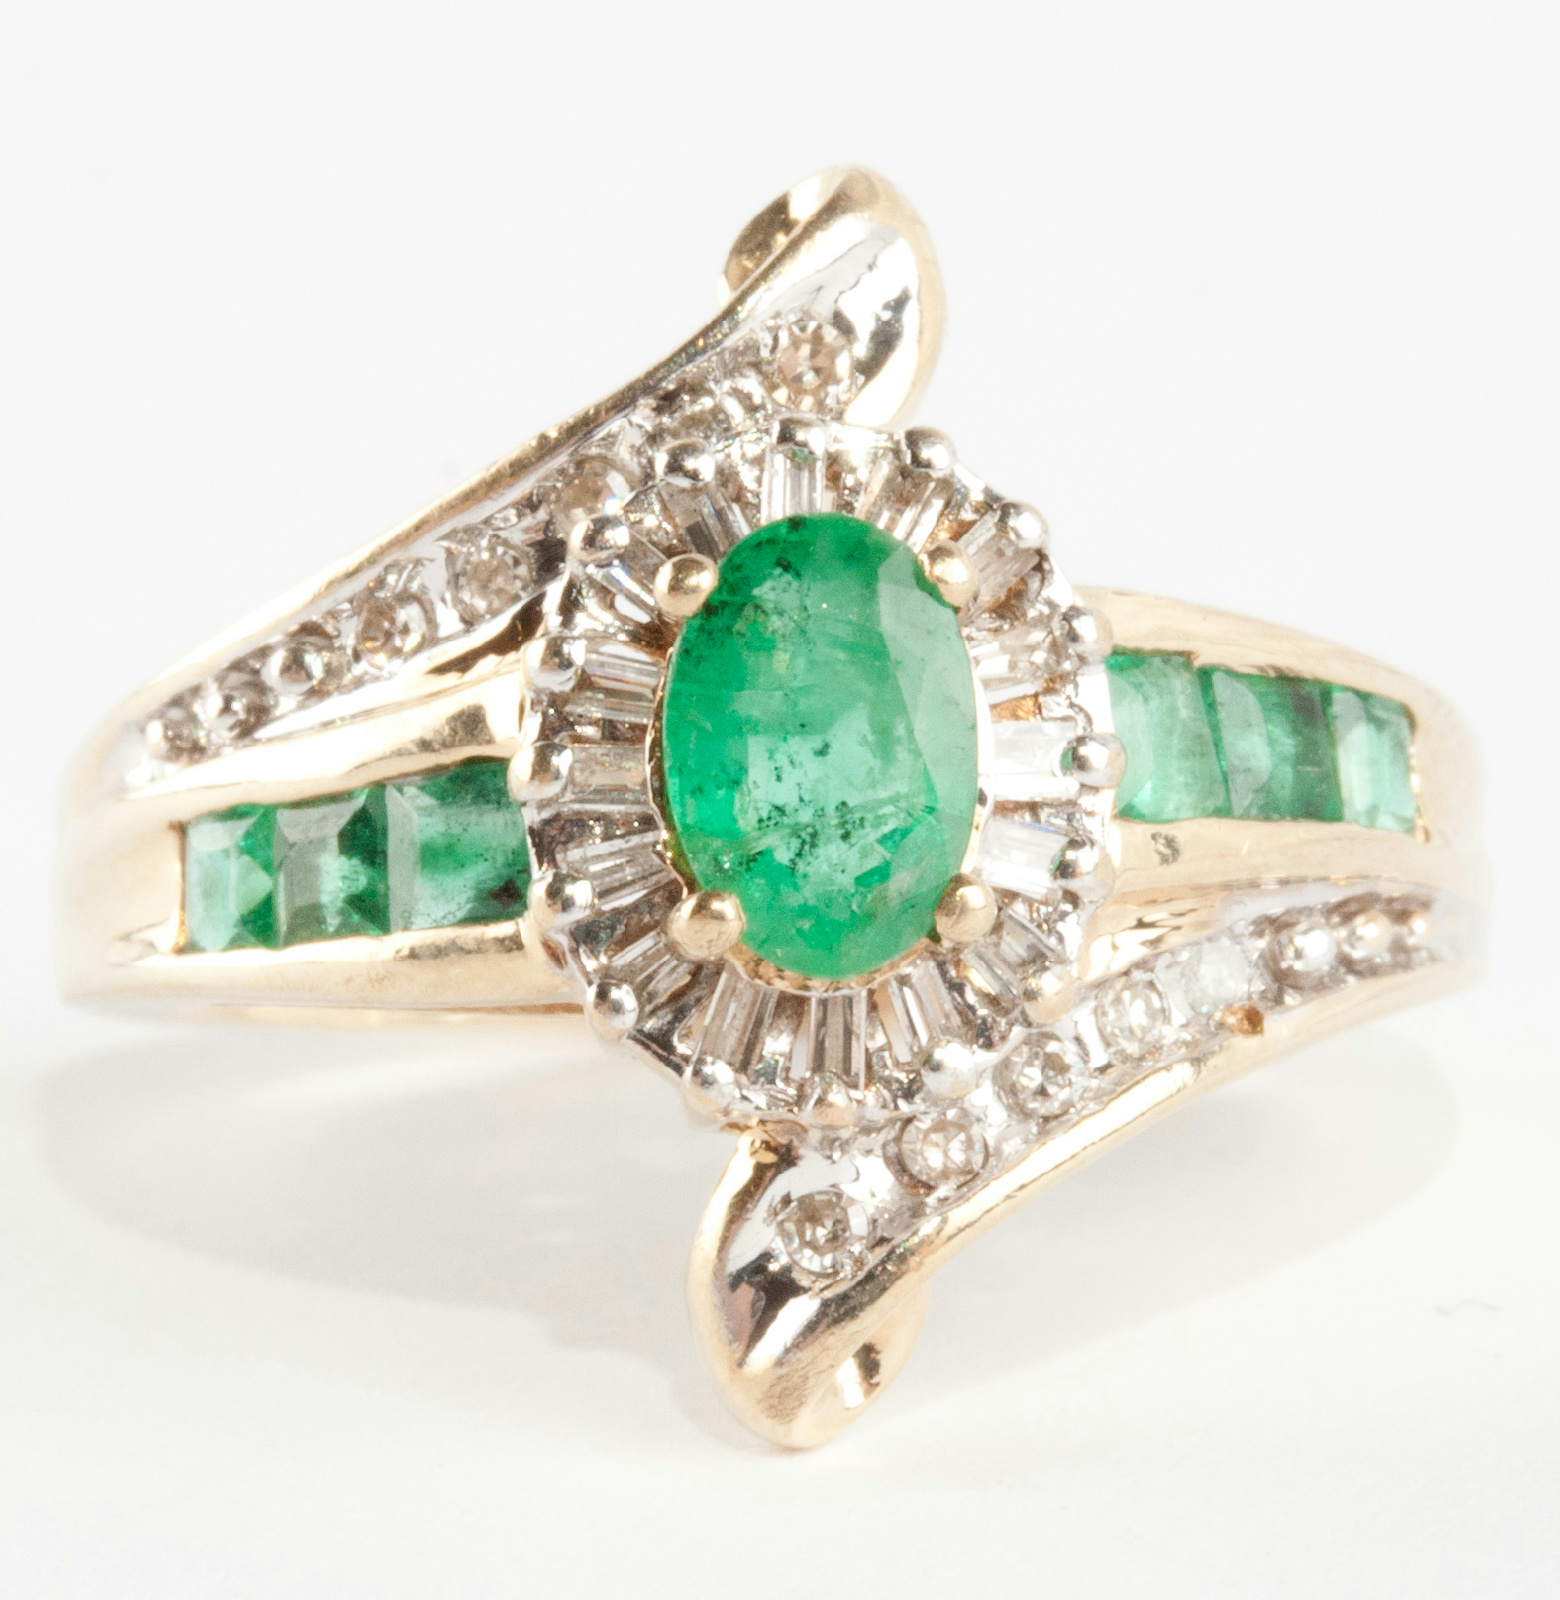 Ladies 10k Yellow Gold Oval Cut Emerald & Diamond Cocktail